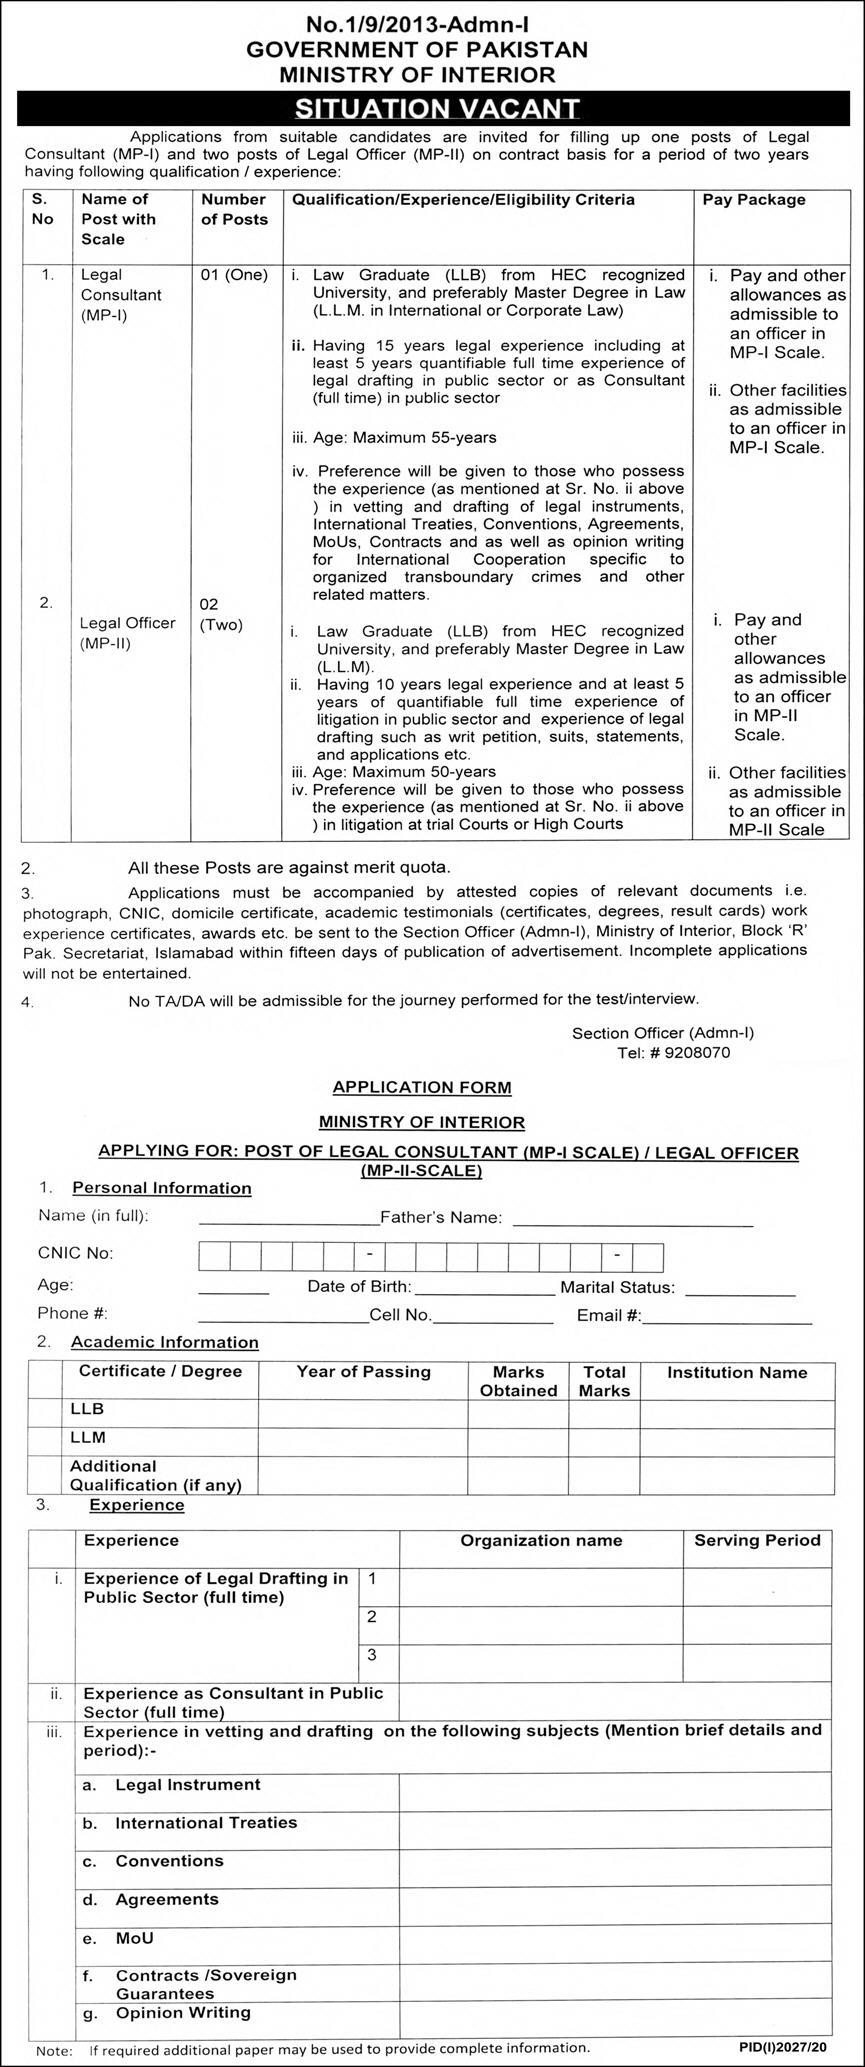 Ministry Of Interior Government of Pakistan Job Advertisement in Pakistan Jobs 2021